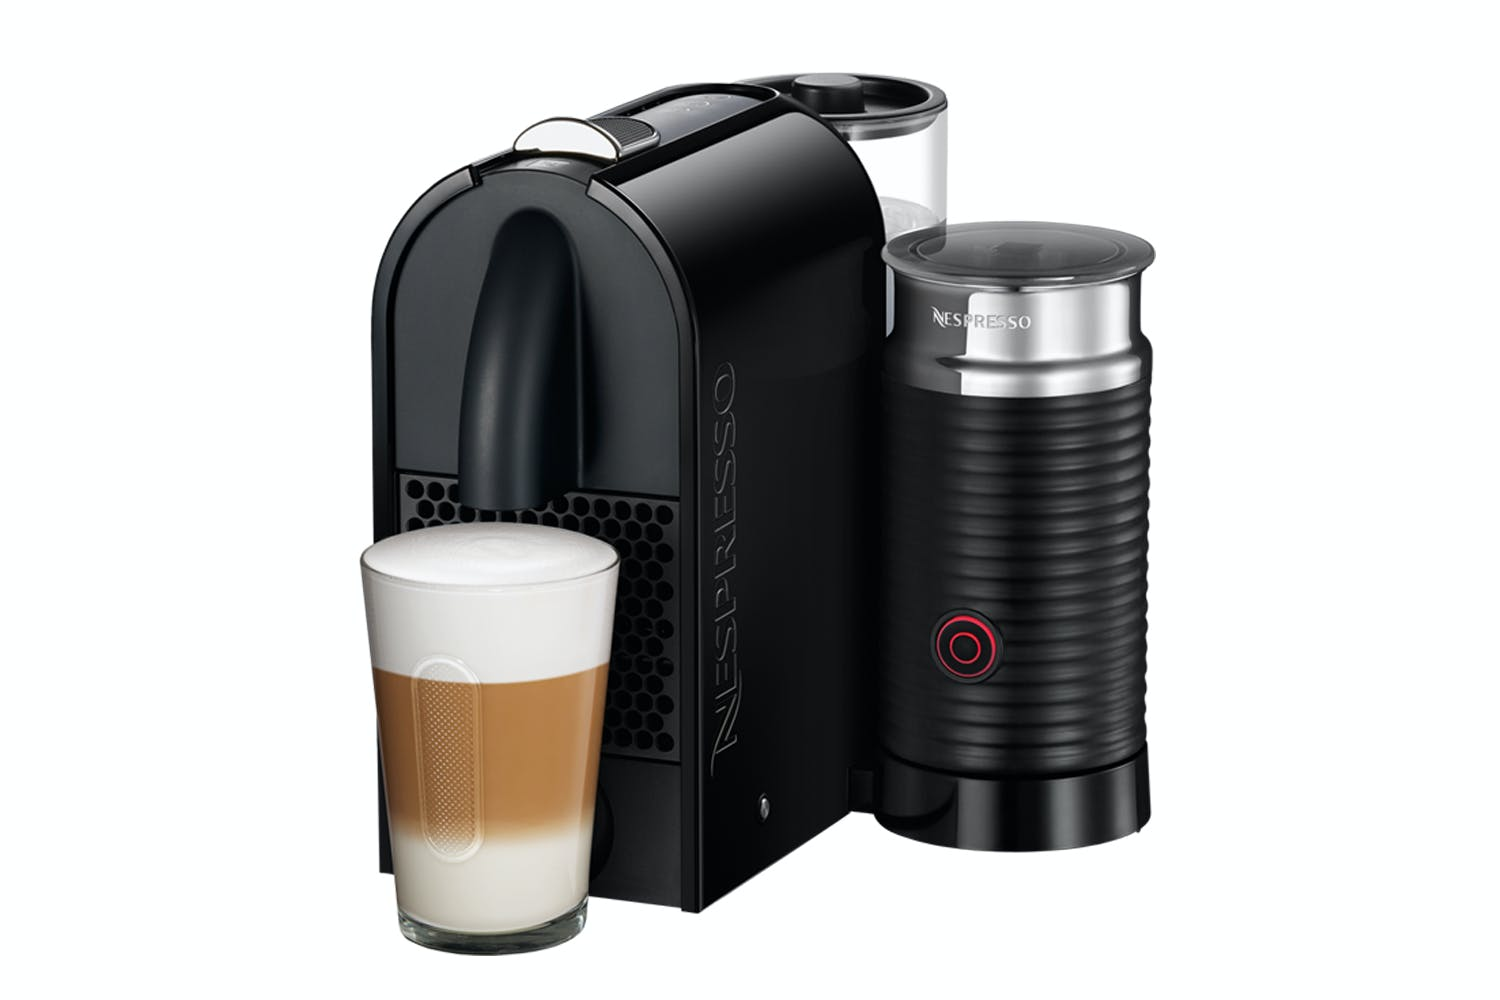 Coffee Makers In New Zealand : Nespresso Nz # Deptis.com > Inspirierendes Design fur Wohnmobel